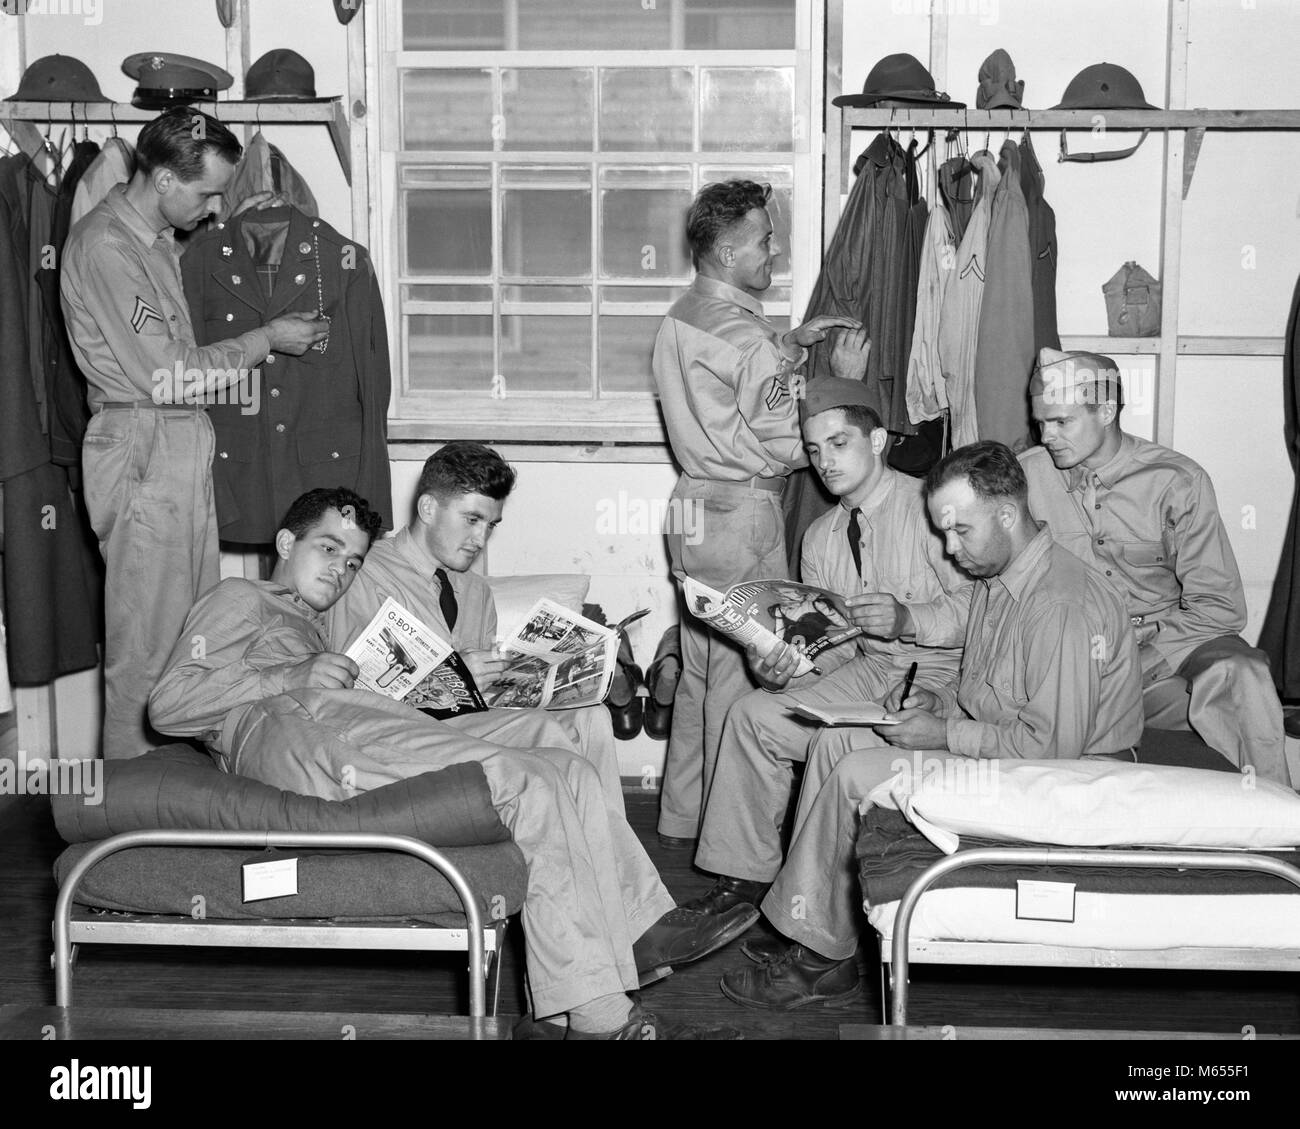 1940s AMERICAN SOLDIERS RELAXING IN BARRACKS READING MAGAZINES AND COMIC BOOKS - a5636 HAR001 HARS TROOPS UNIFORMS - Stock Image